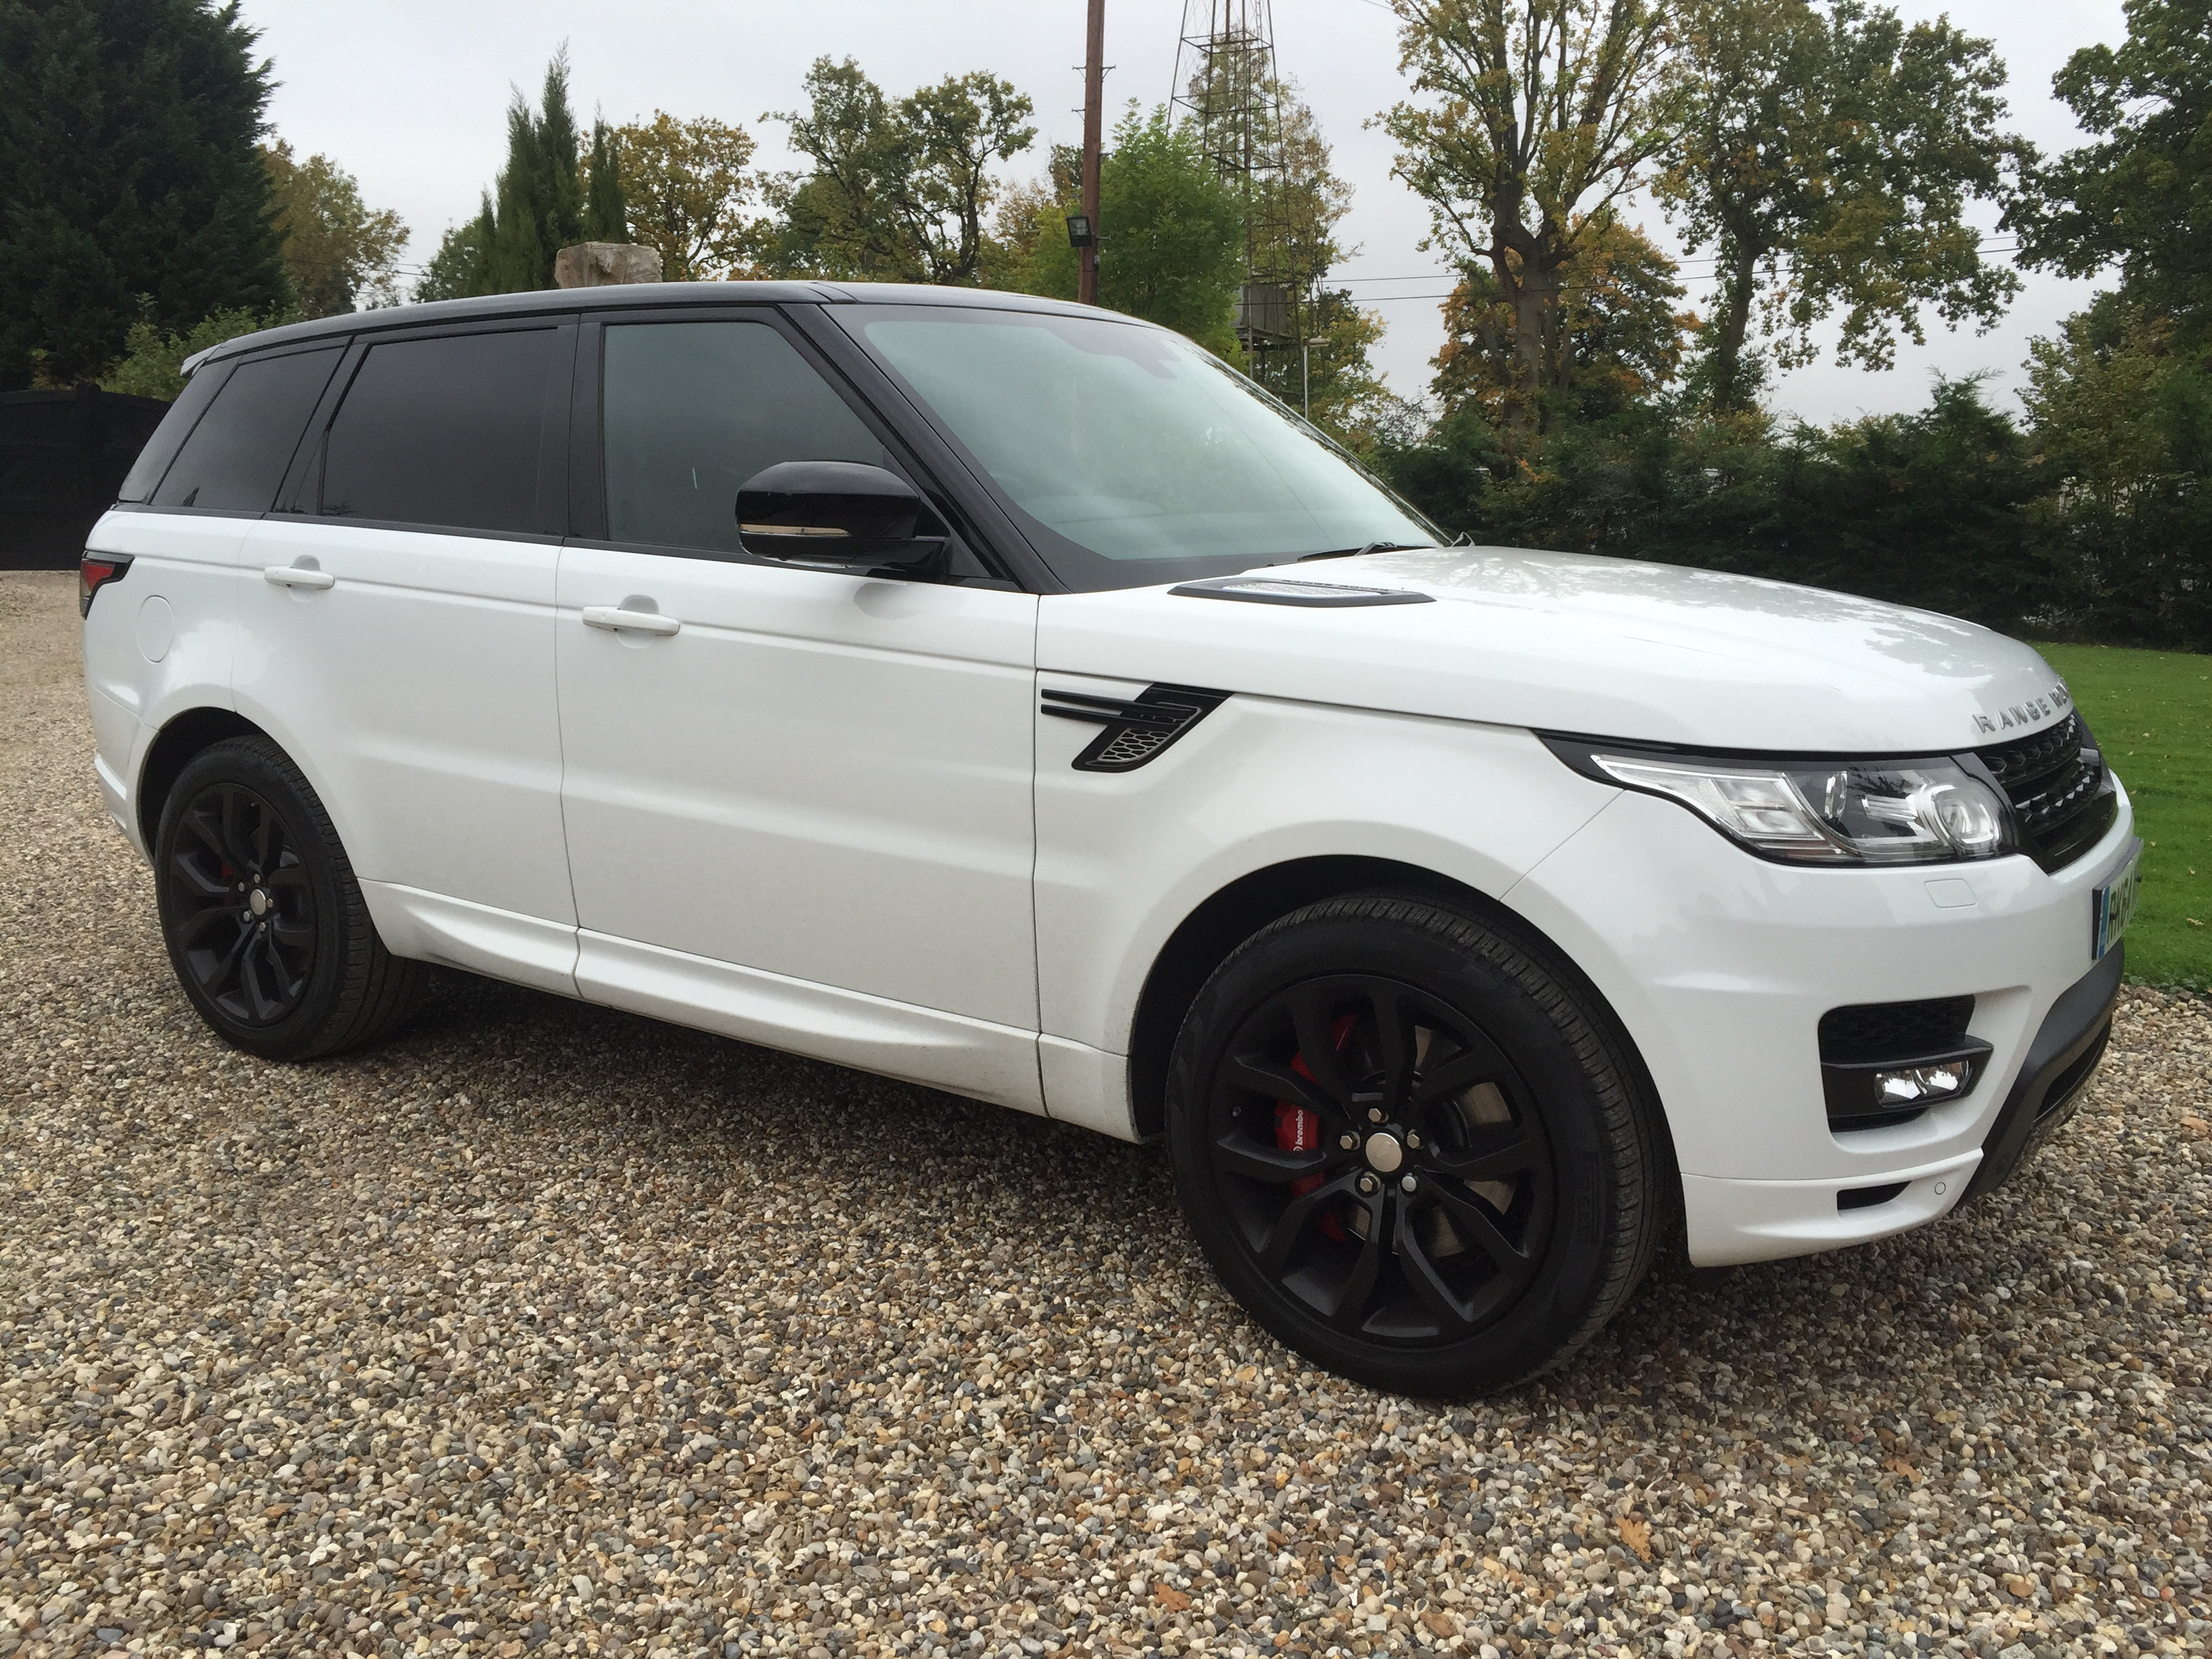 Hire a Range Rover anywhere in the UK Range Rover Hire pany